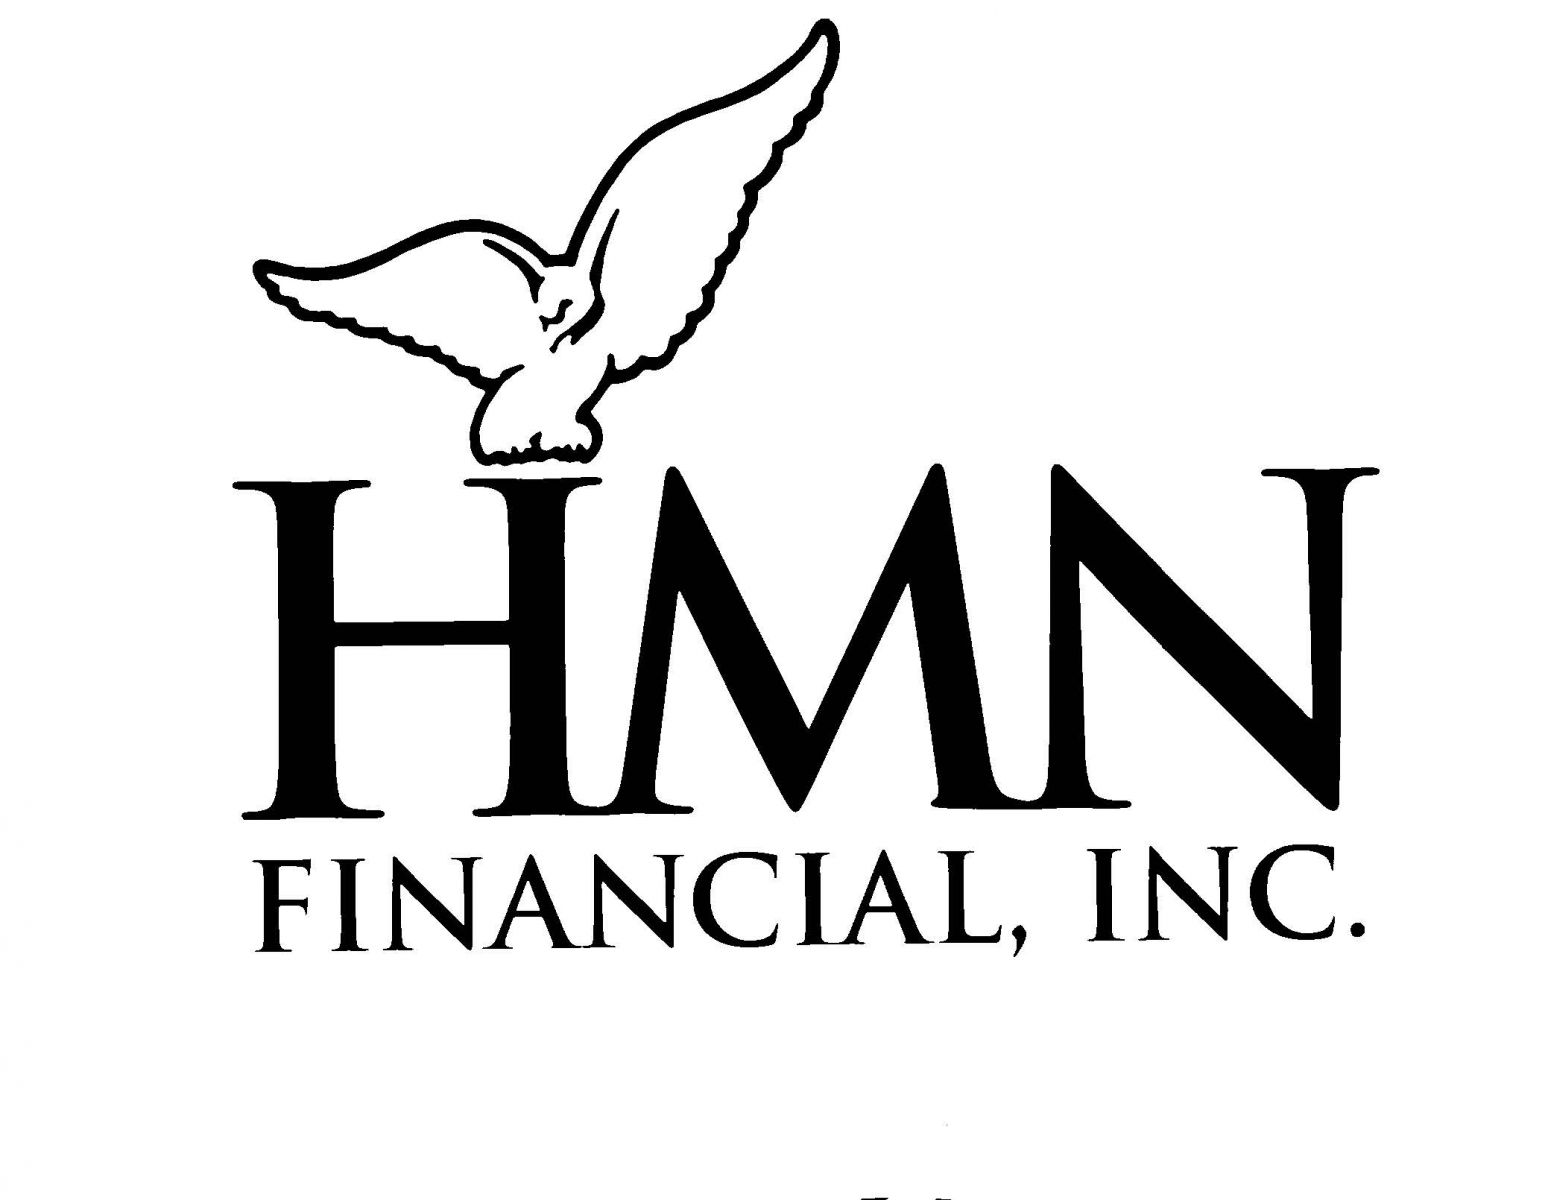 Hmn Financial Inc